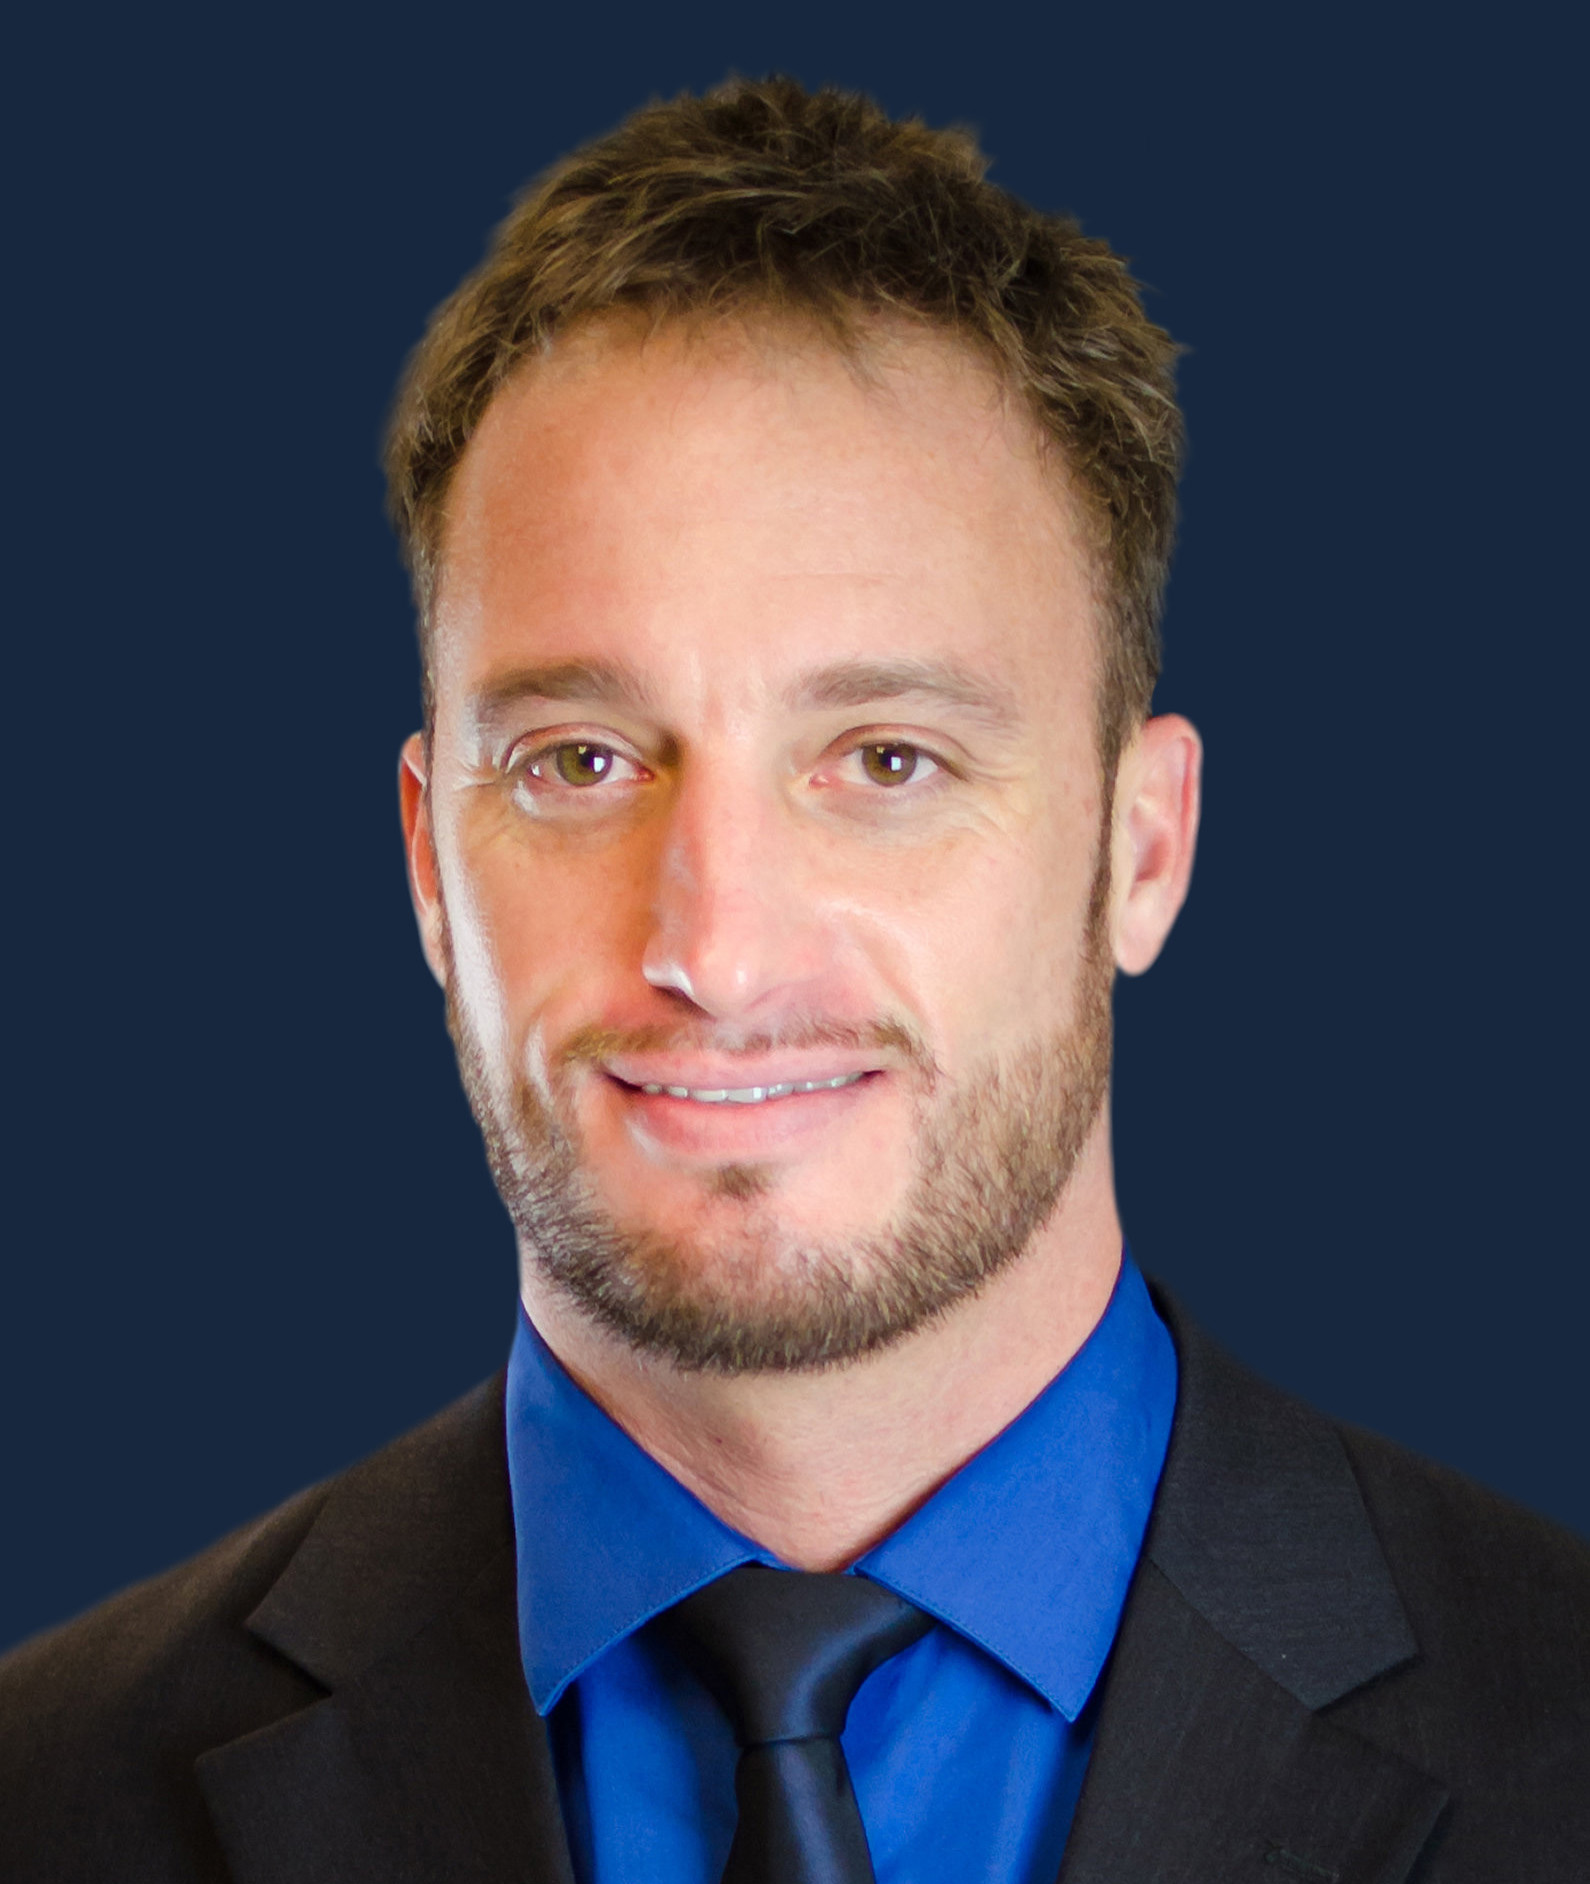 jason lyles, physician assistant, pain clinic, pain relief center, jacksonville pain relief center, florida pain management, Riverside pain physicians